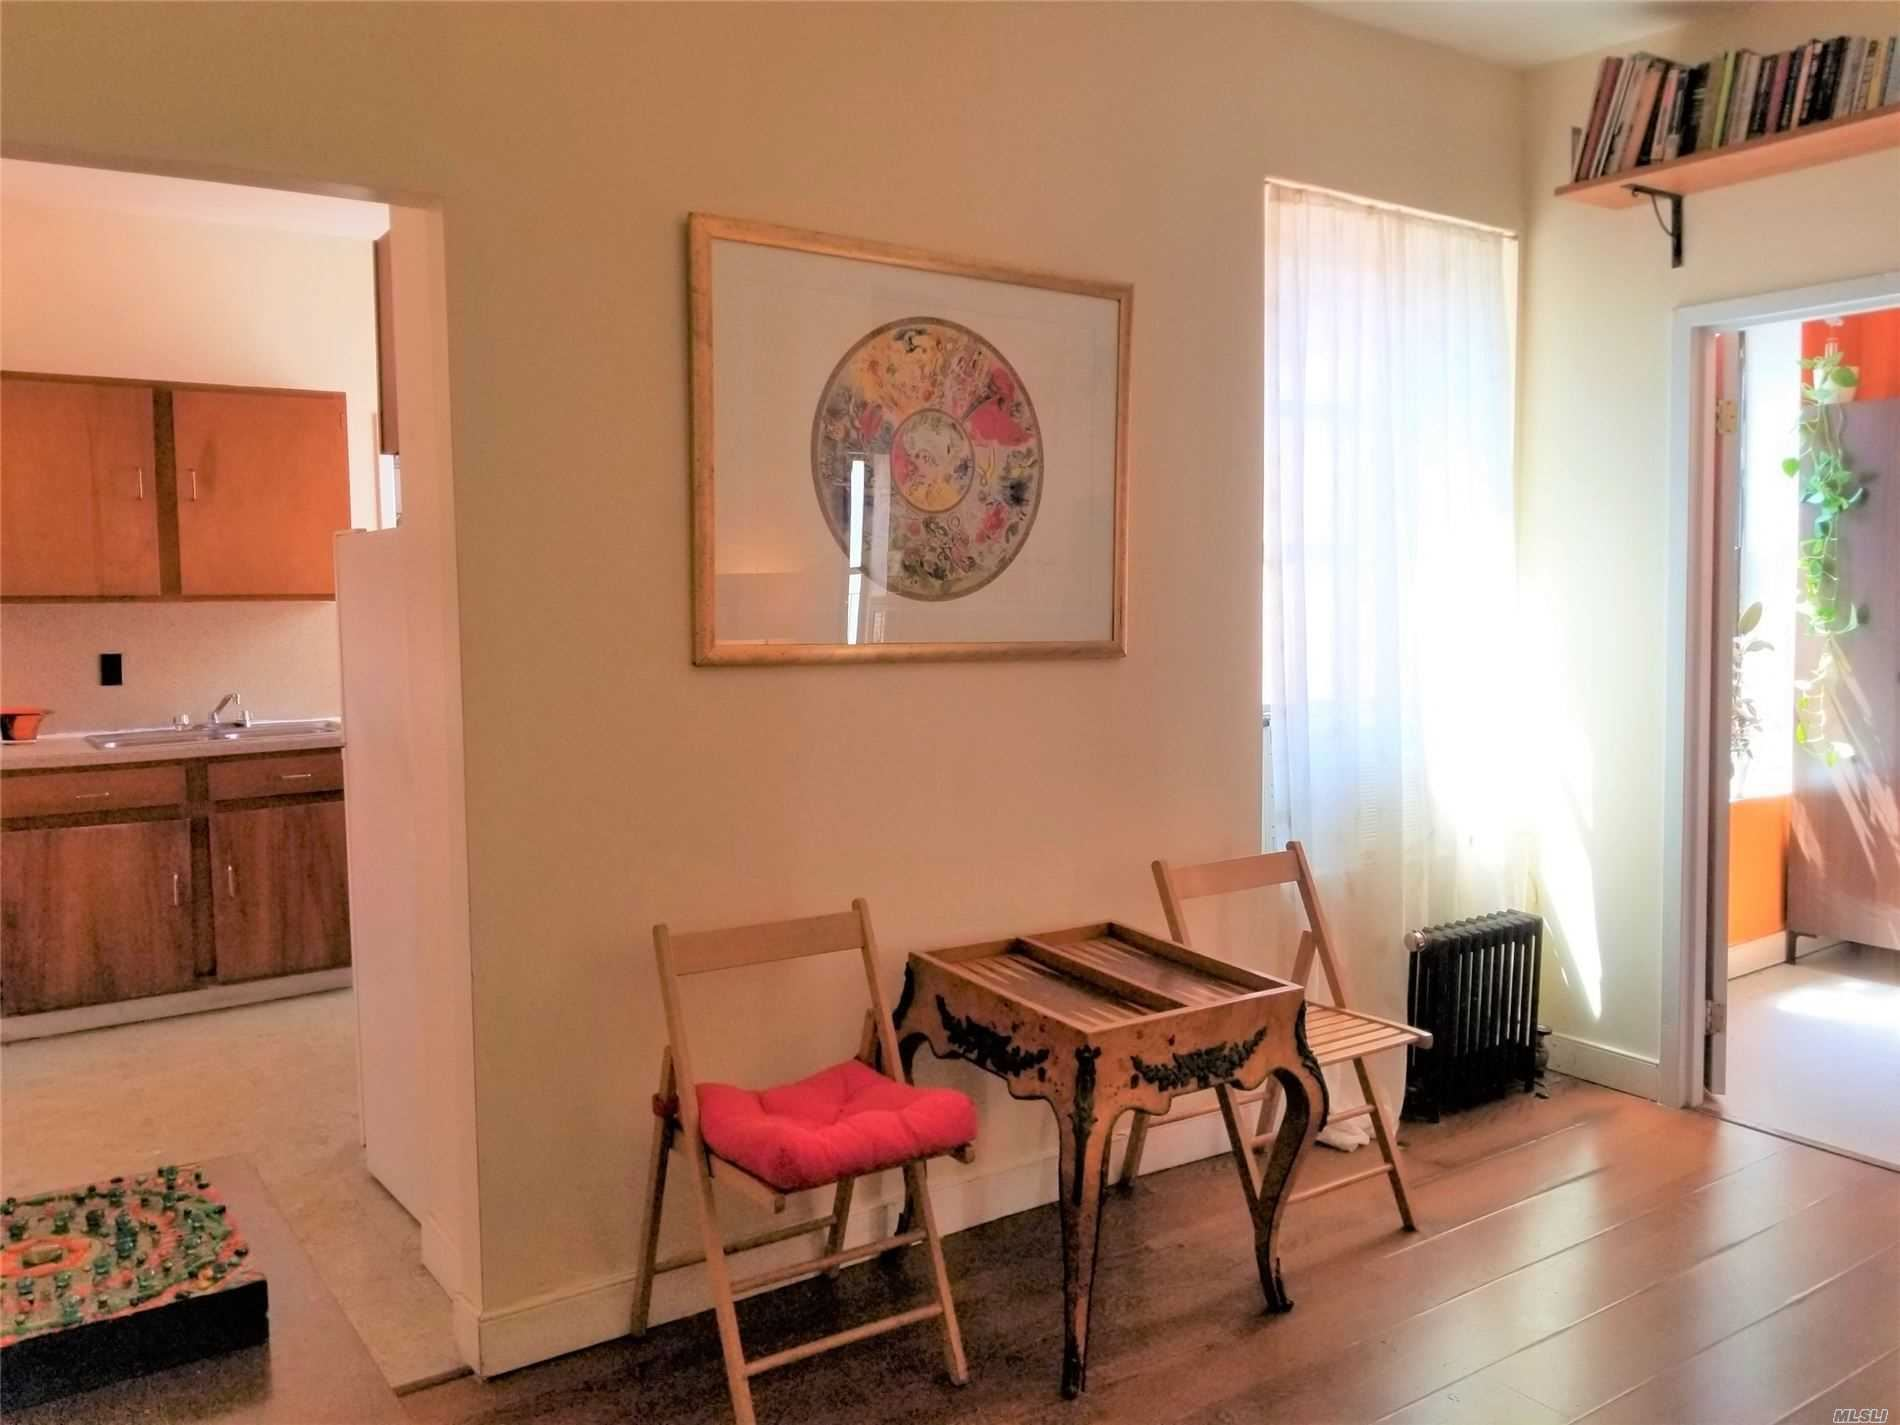 311 E 3 Street #28, New York, NY 10009 - MLS#: 3214416